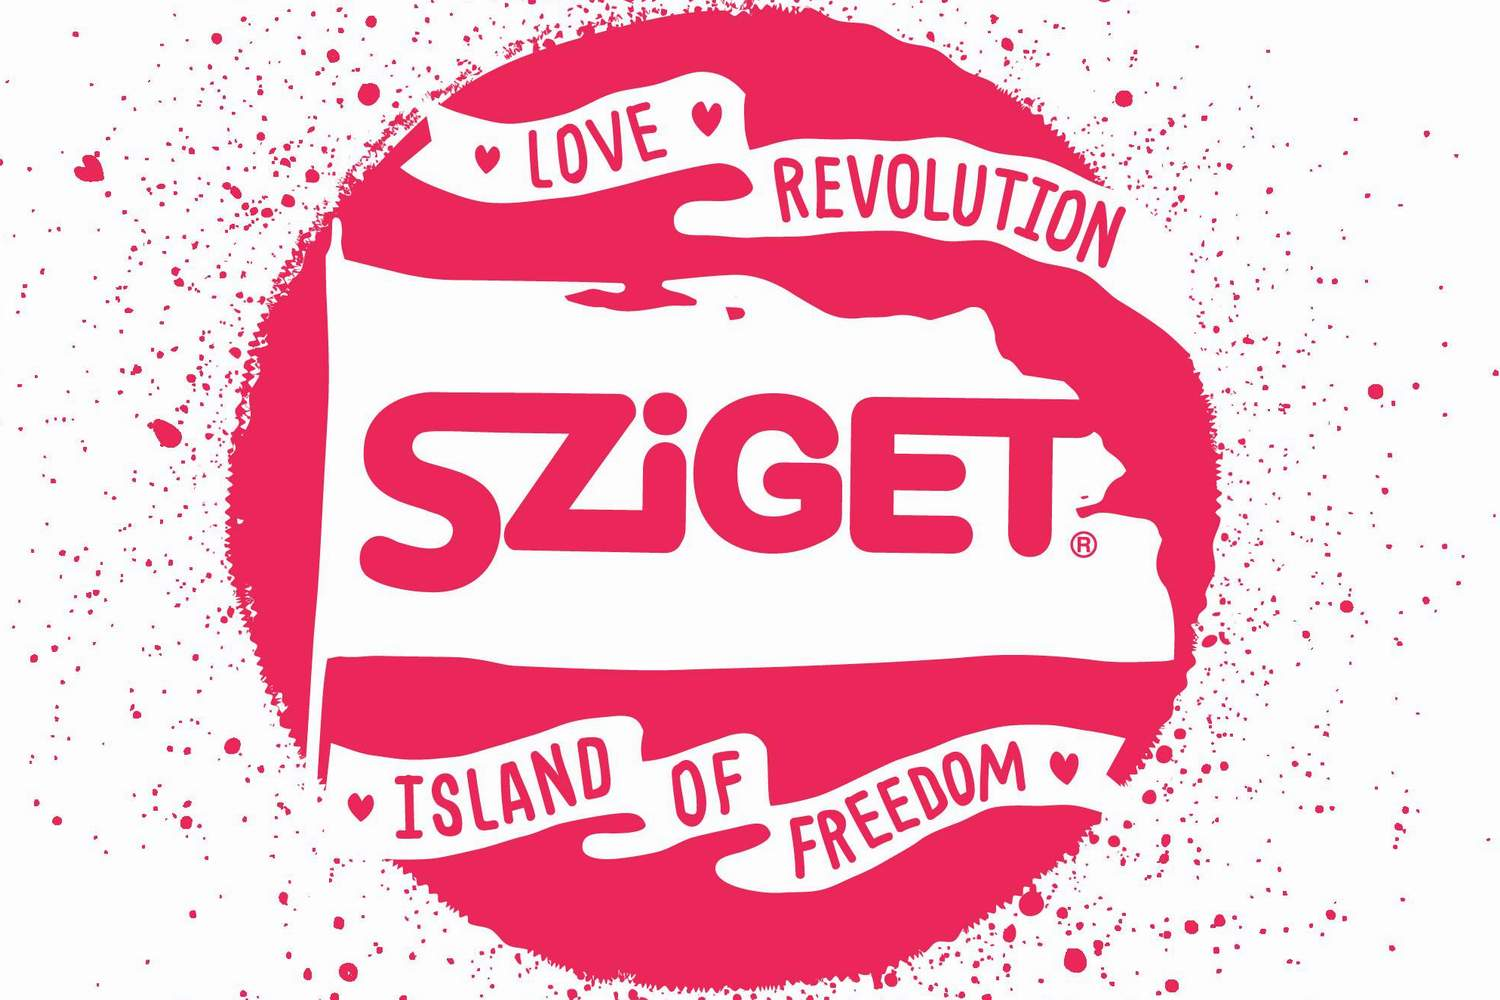 Public Transport Services During Sziget Festival